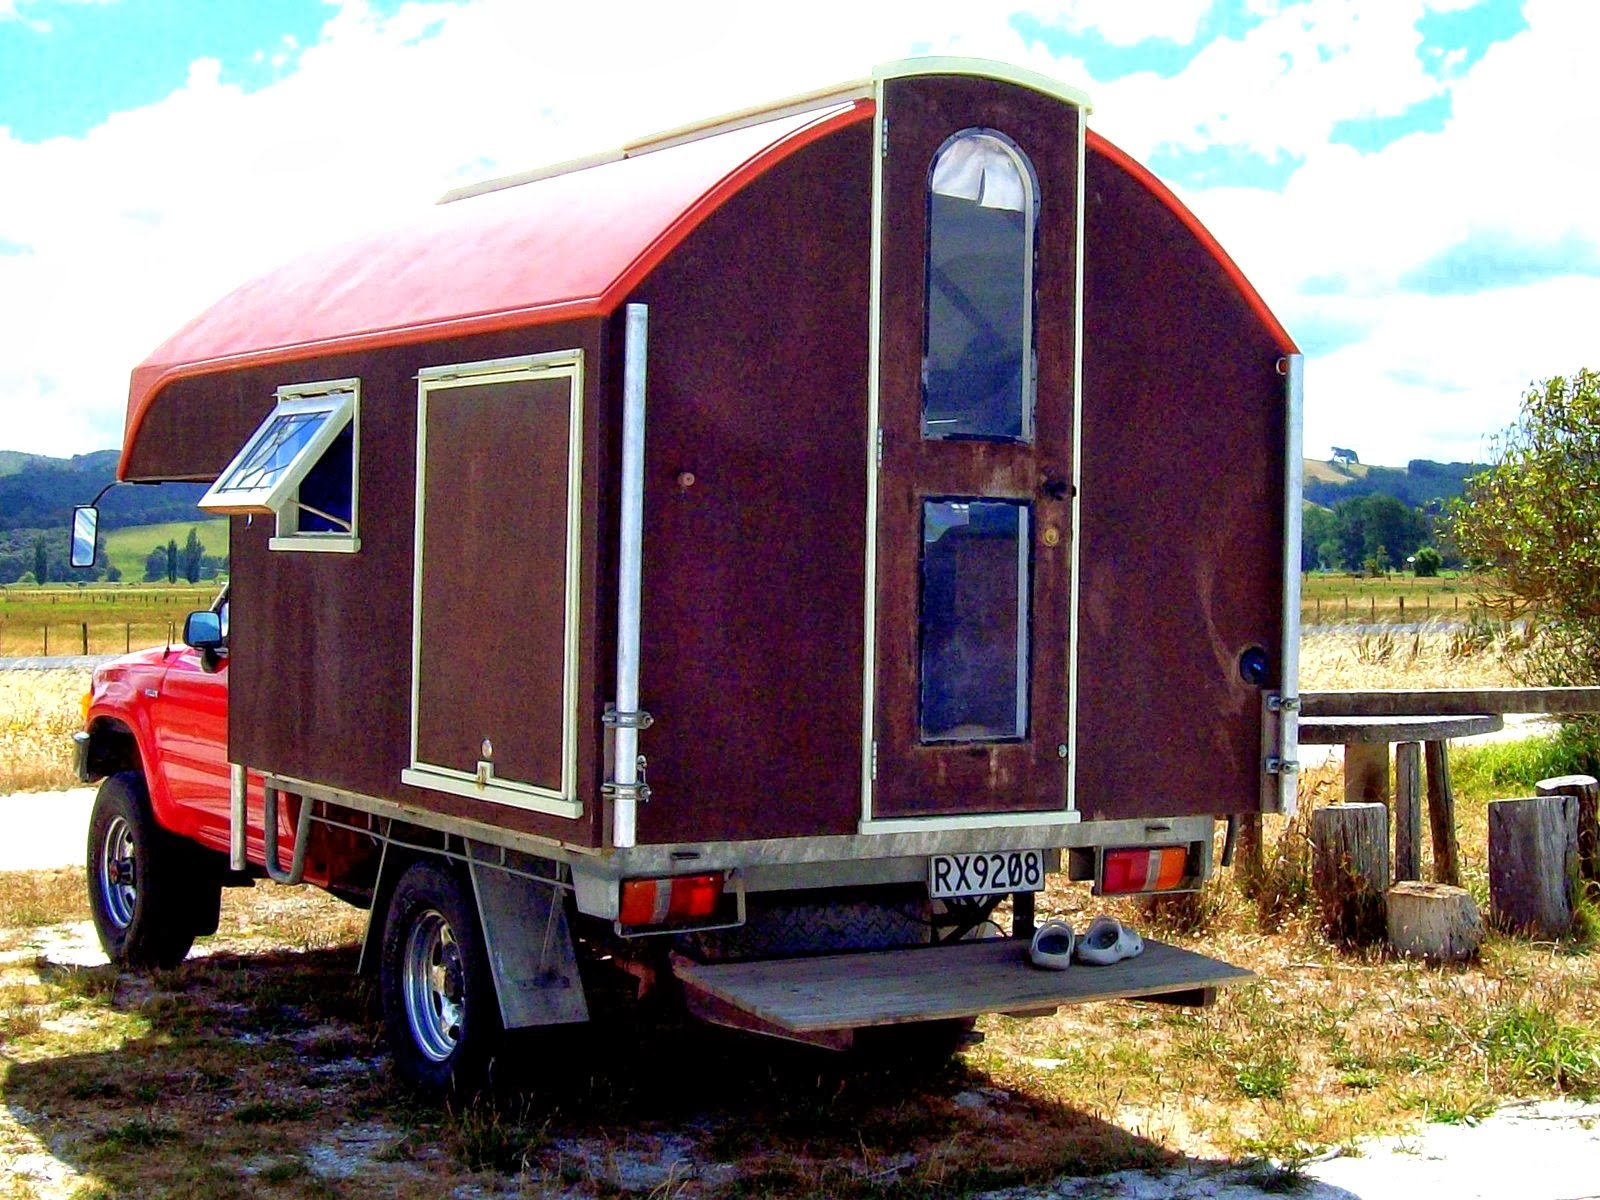 The Flying Tortoise Simple And Delightful Tiny Homes On The Back